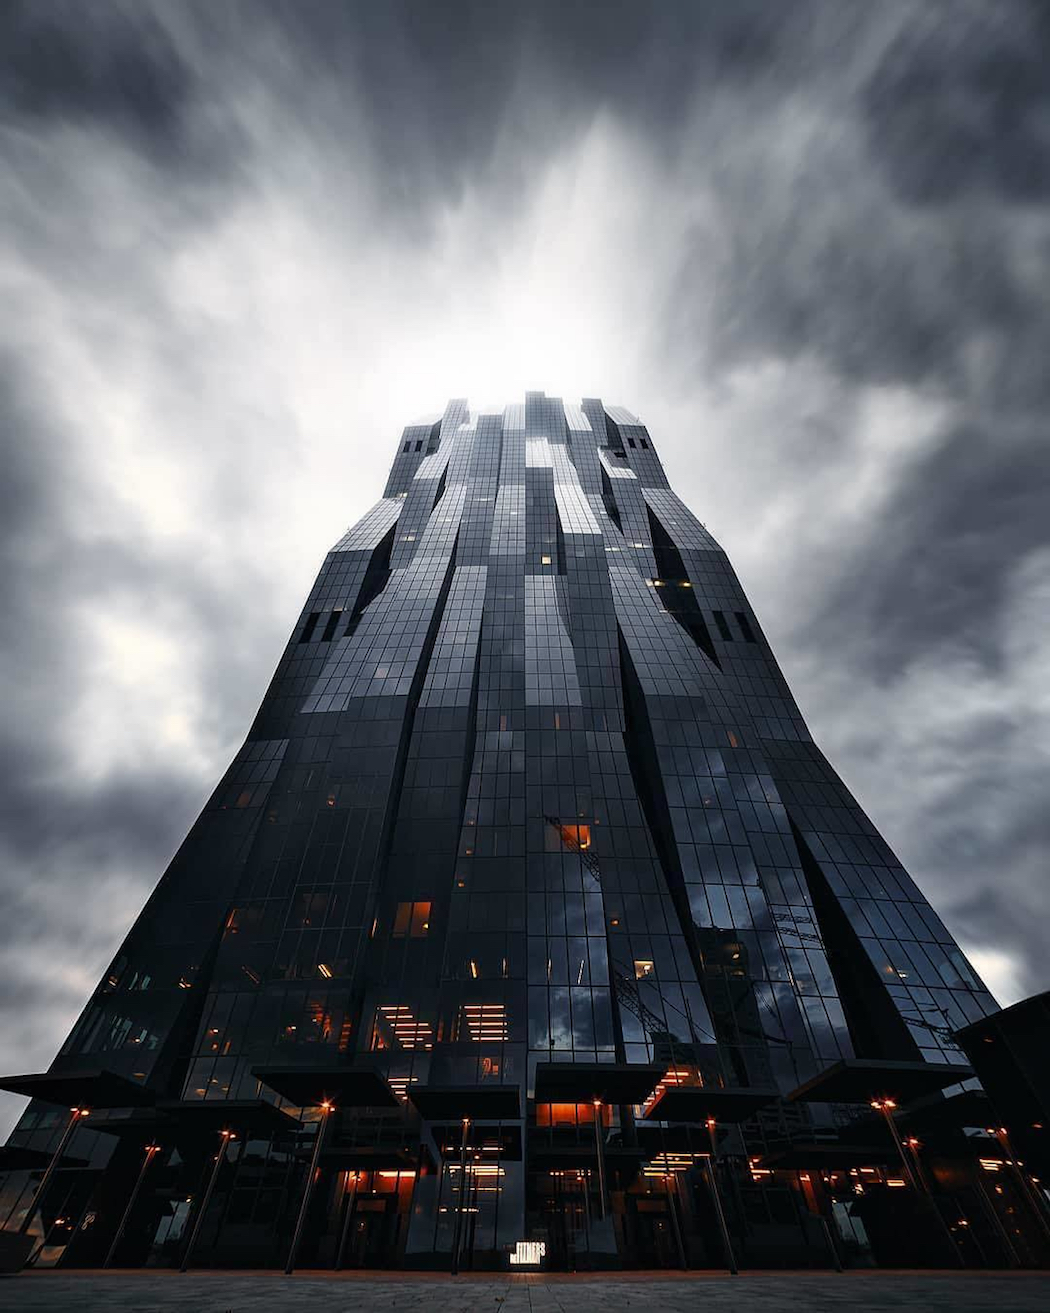 dc_tower_1_designed_by_dominique_perrault